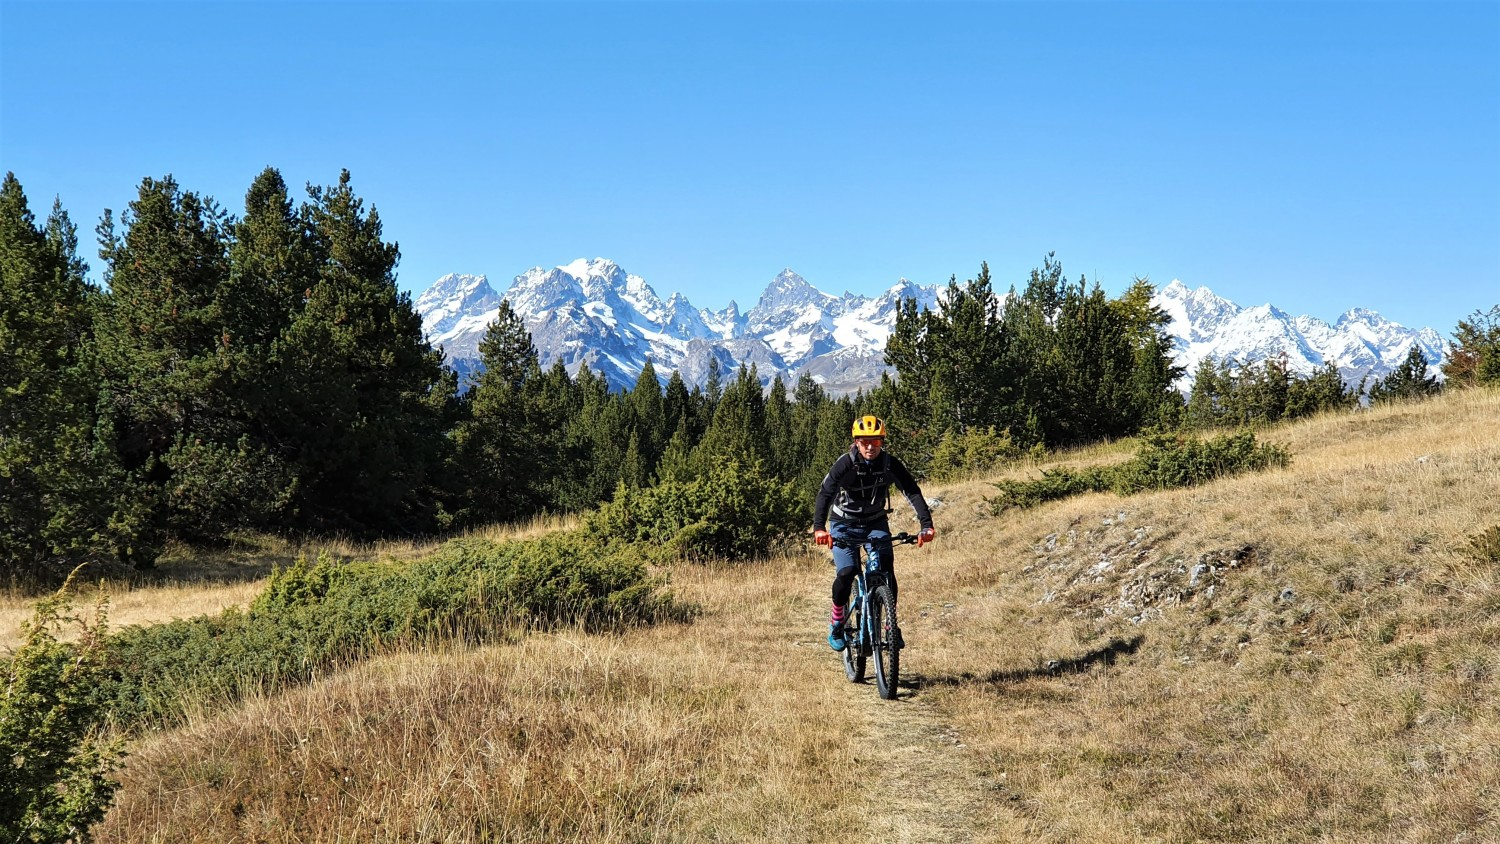 E-mountain biking - Discover the best spots of Serre Chevalier Valley